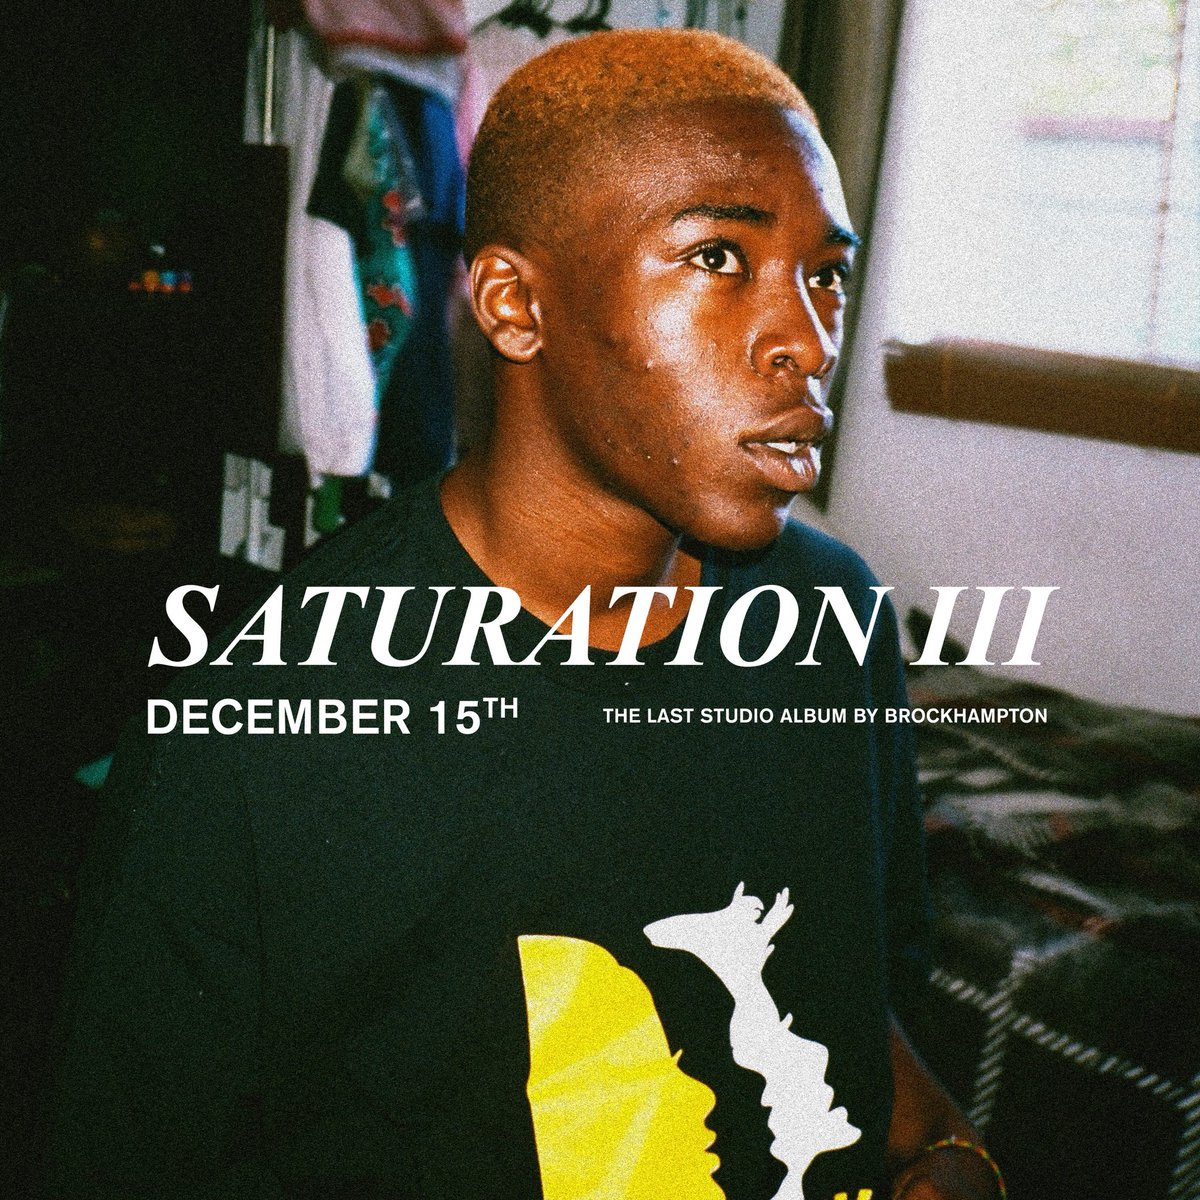 Good news: @brckhmptn's Saturation III isn't actually their last album. https://t.co/jF3pcgCLzz